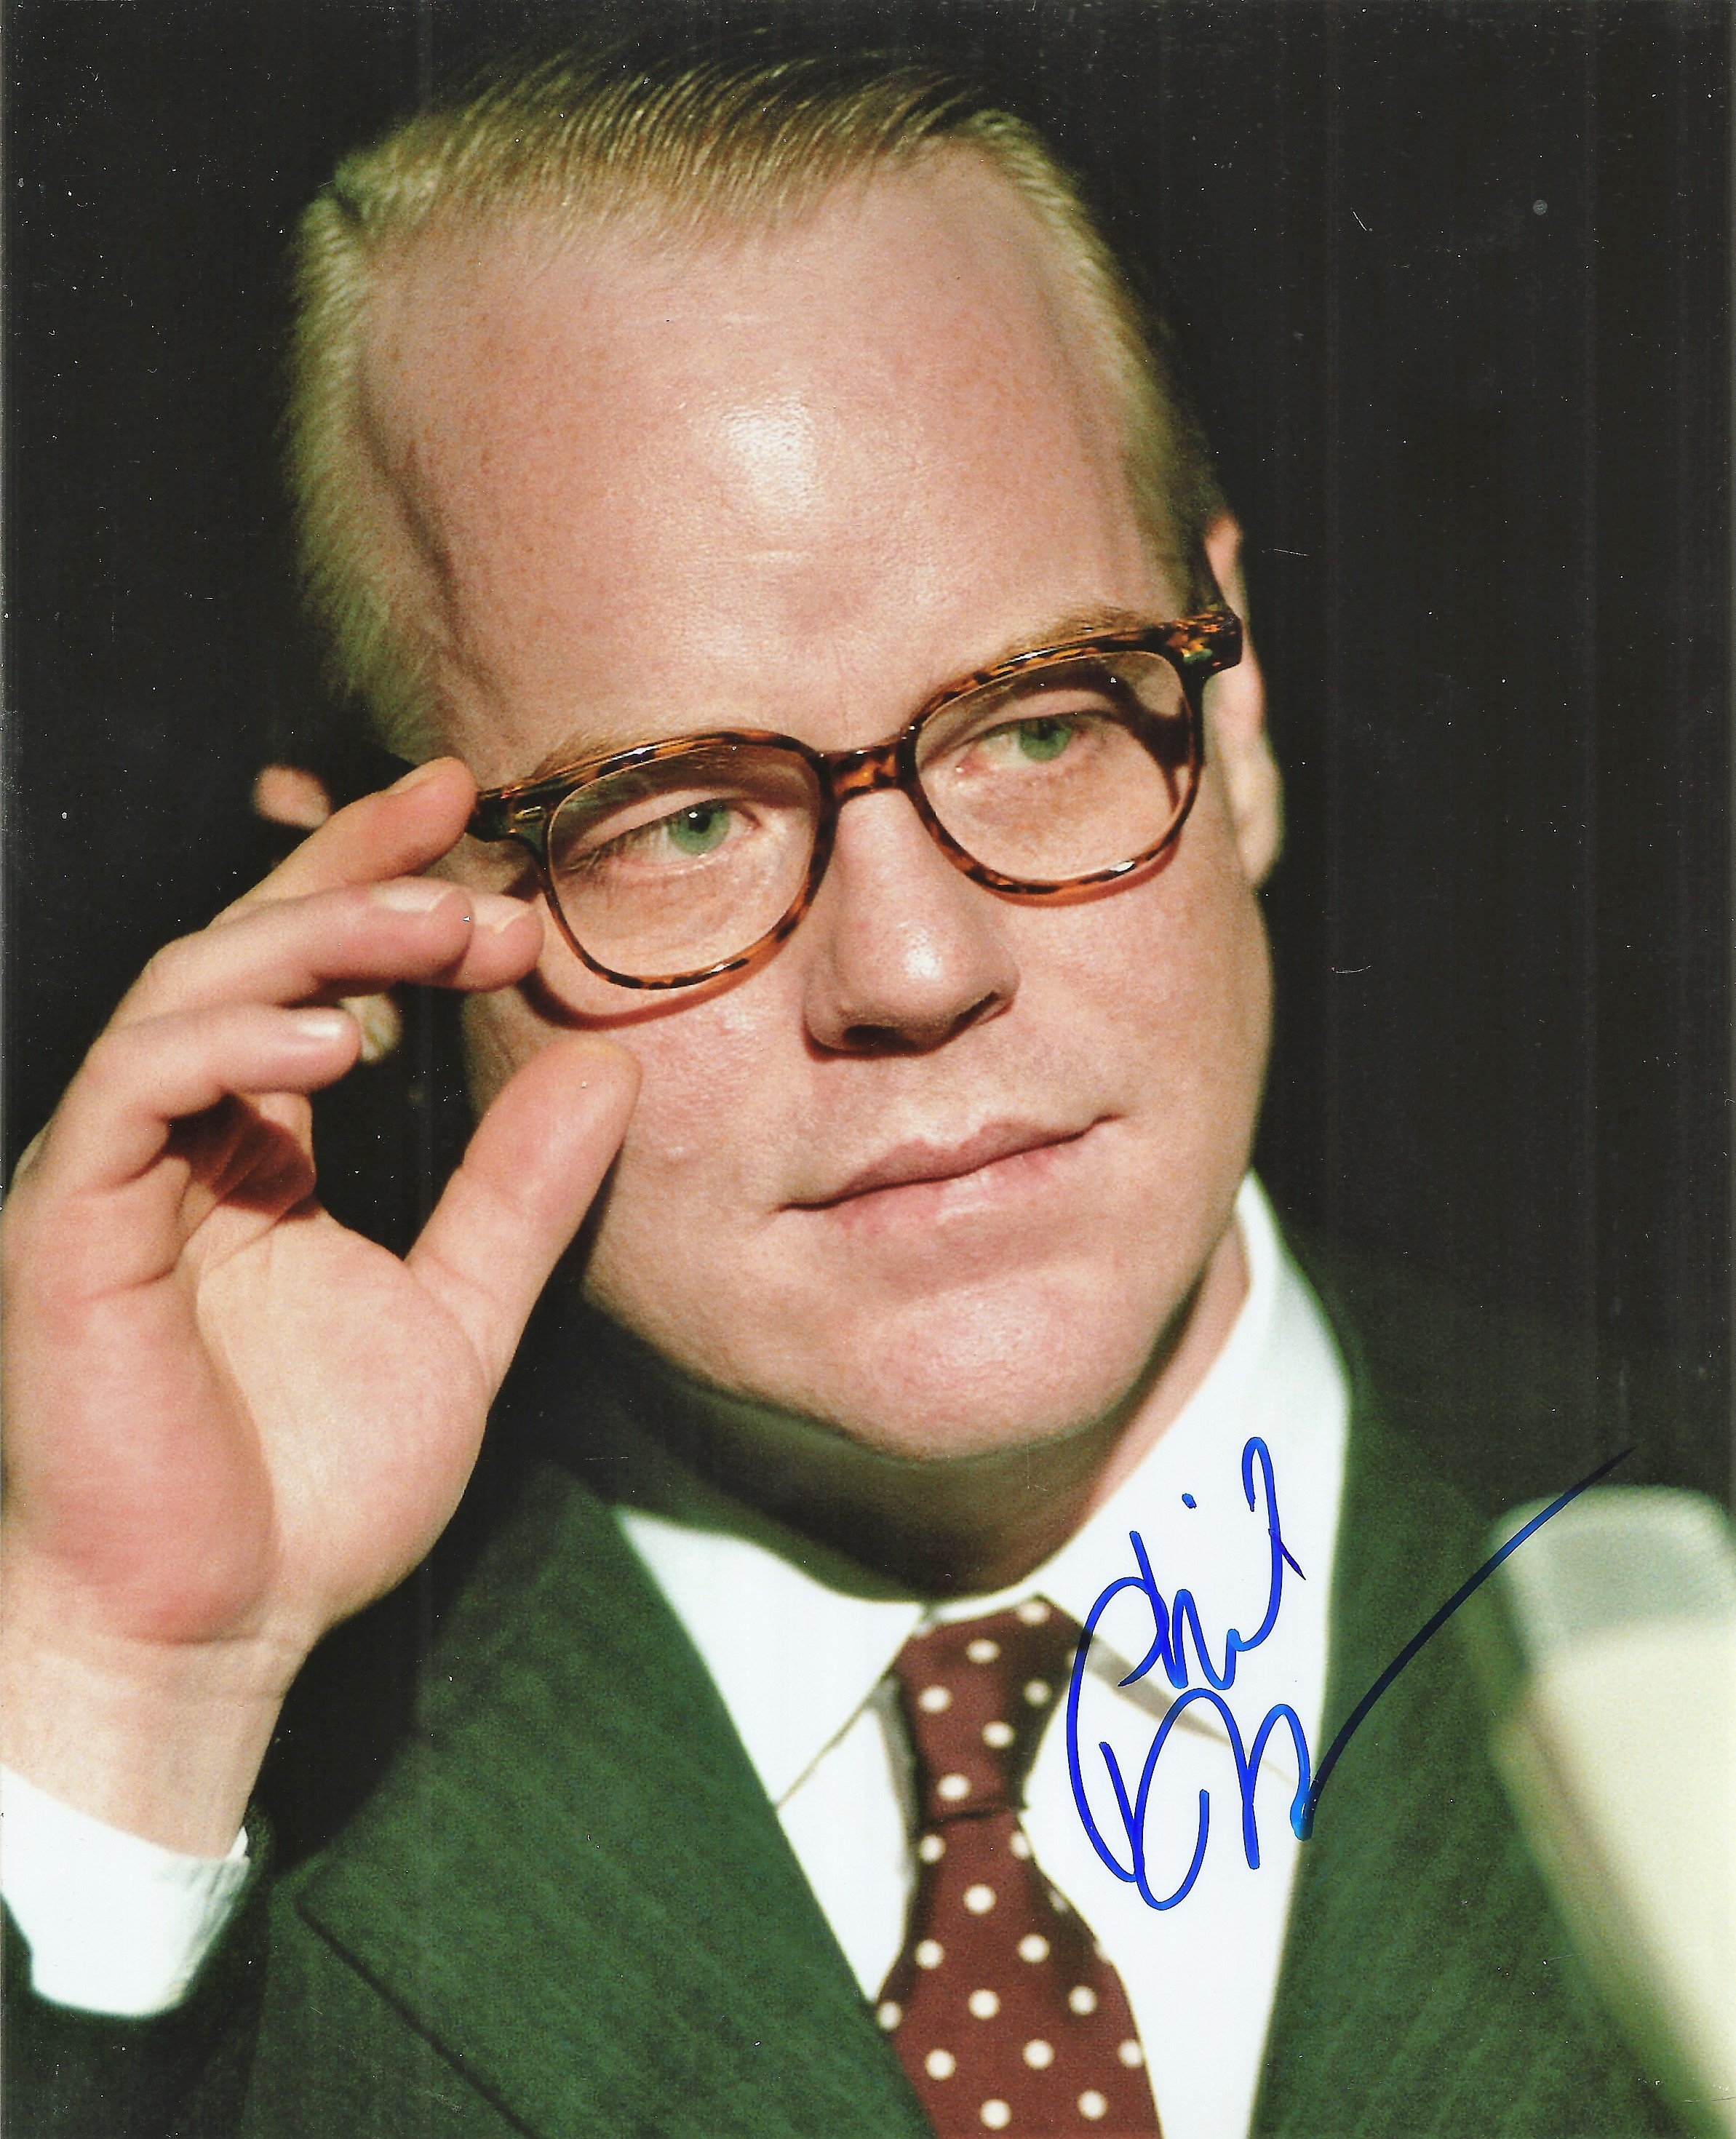 Philip Seymour Hoffmann signed 10x8 colour photo. Good condition. All autographs come with a